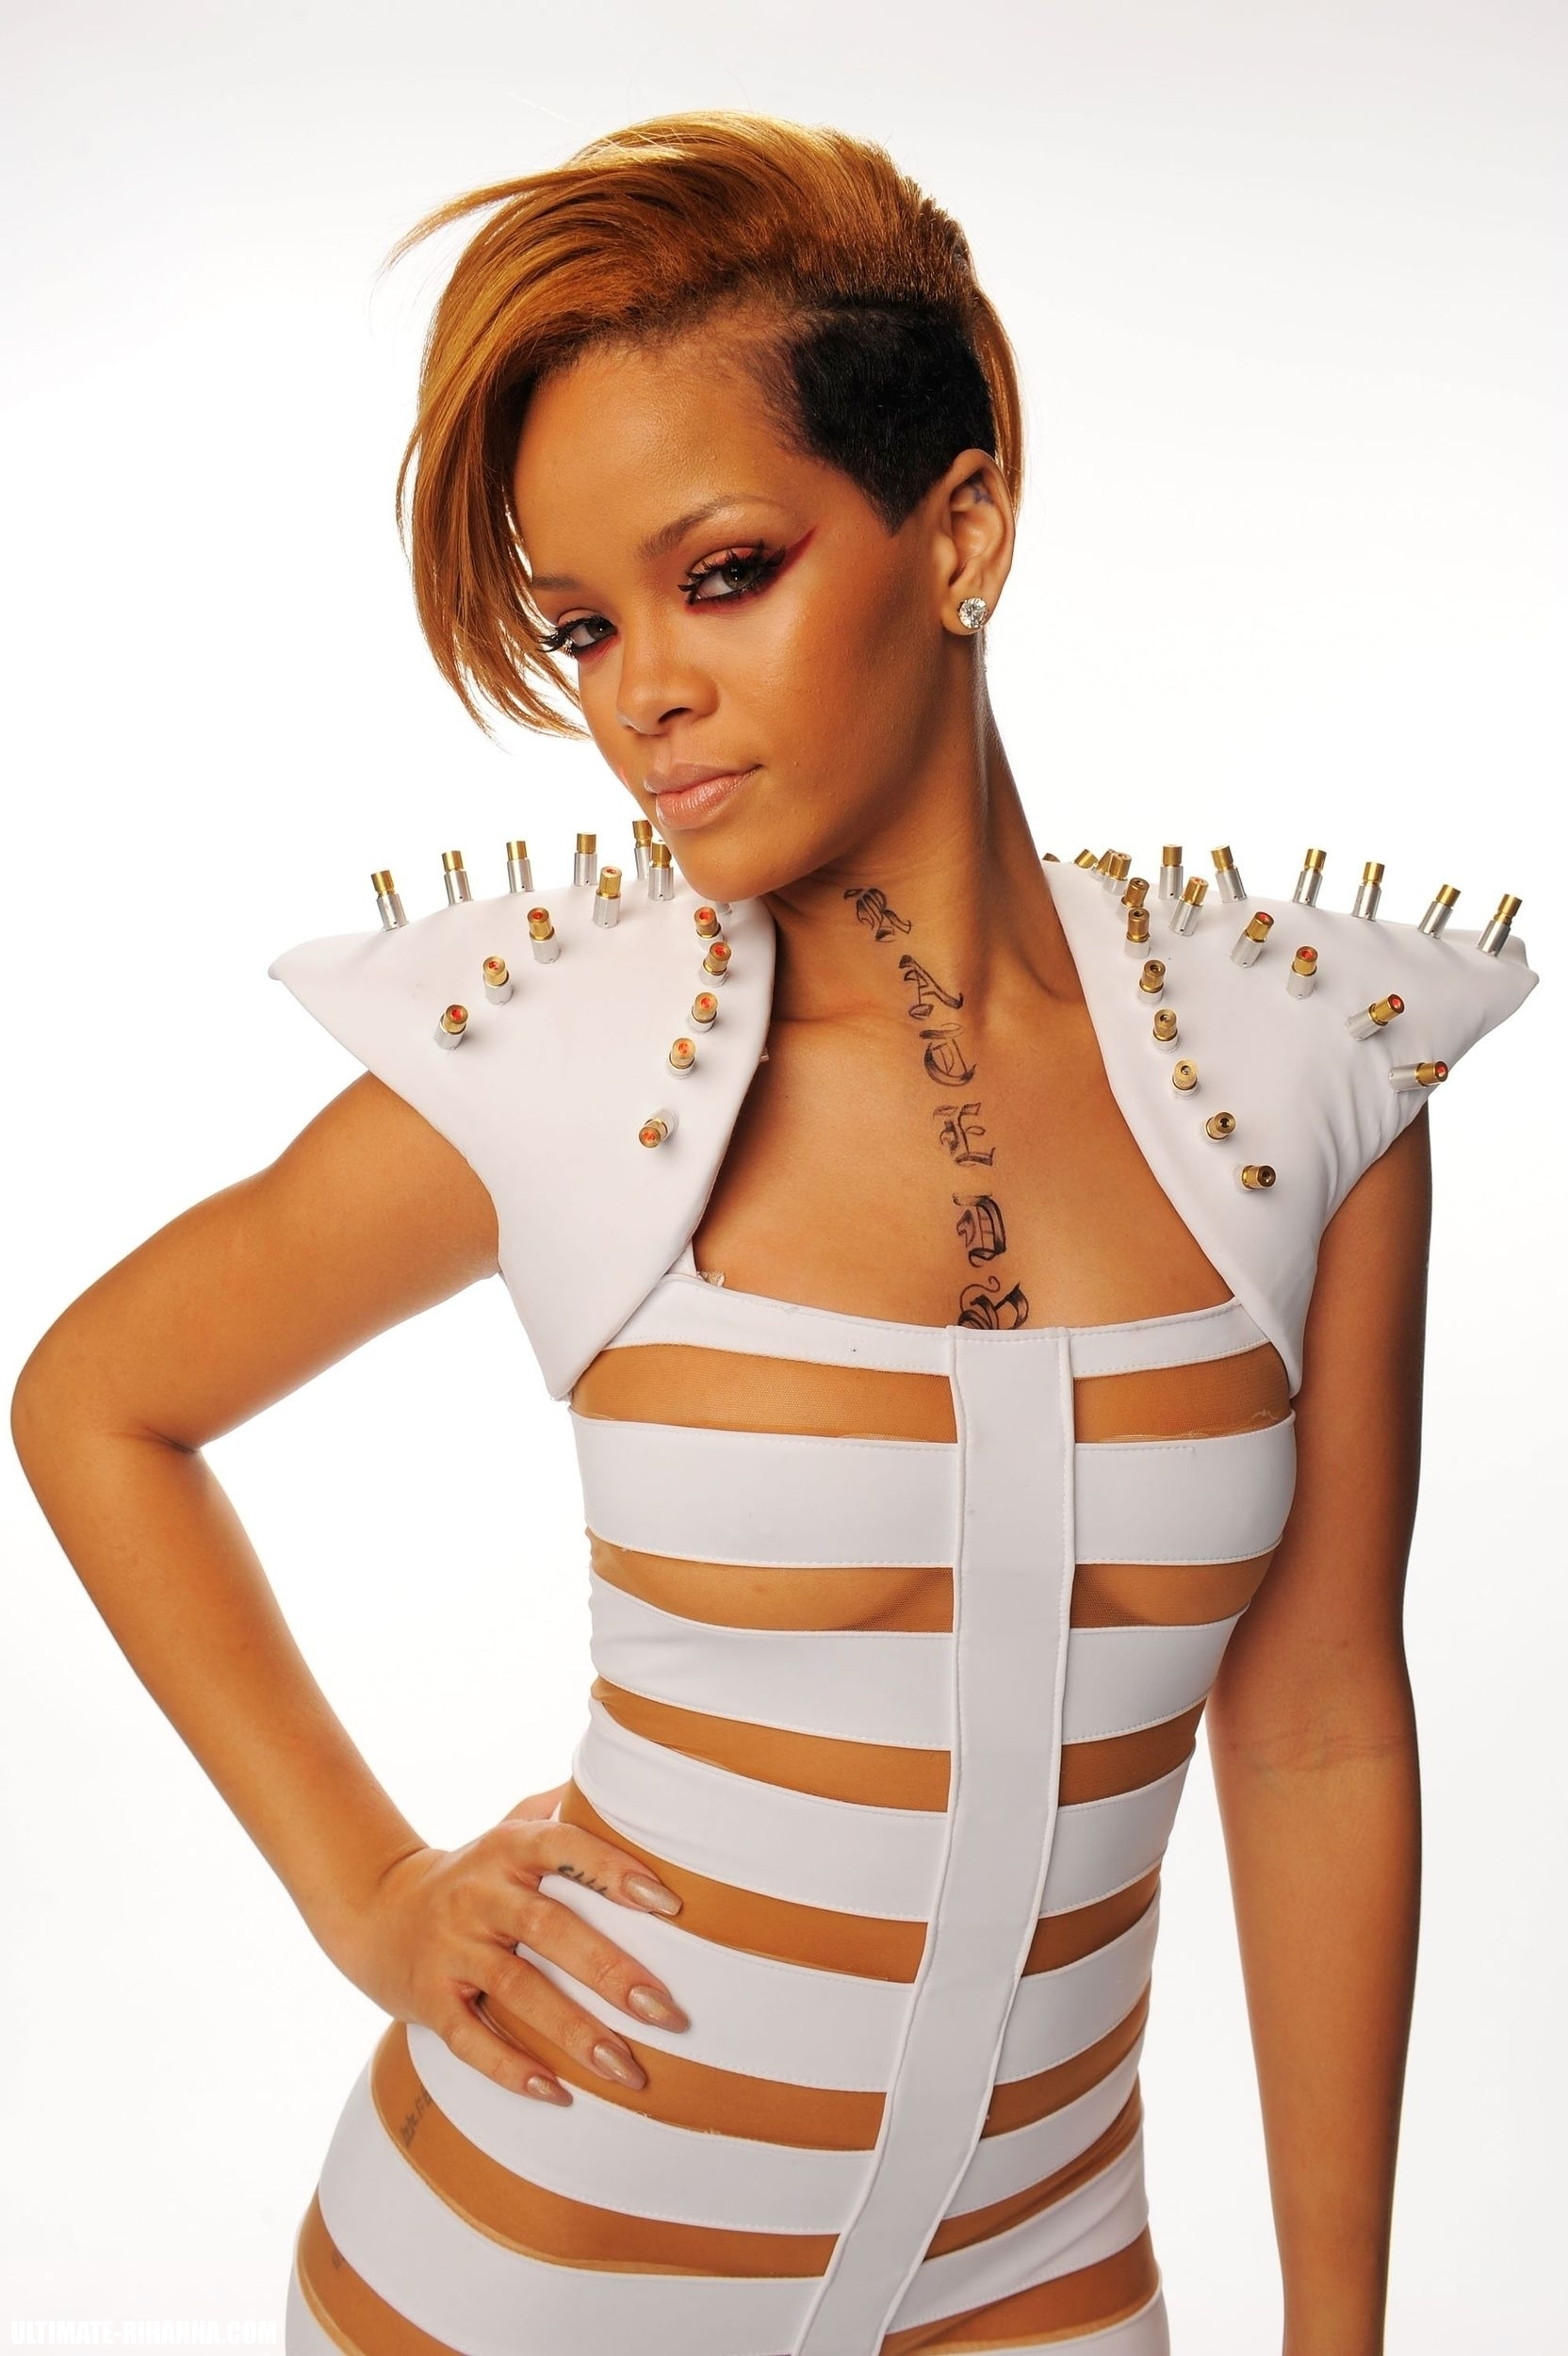 Frenchman Fined for Pirating Rihanna Songs